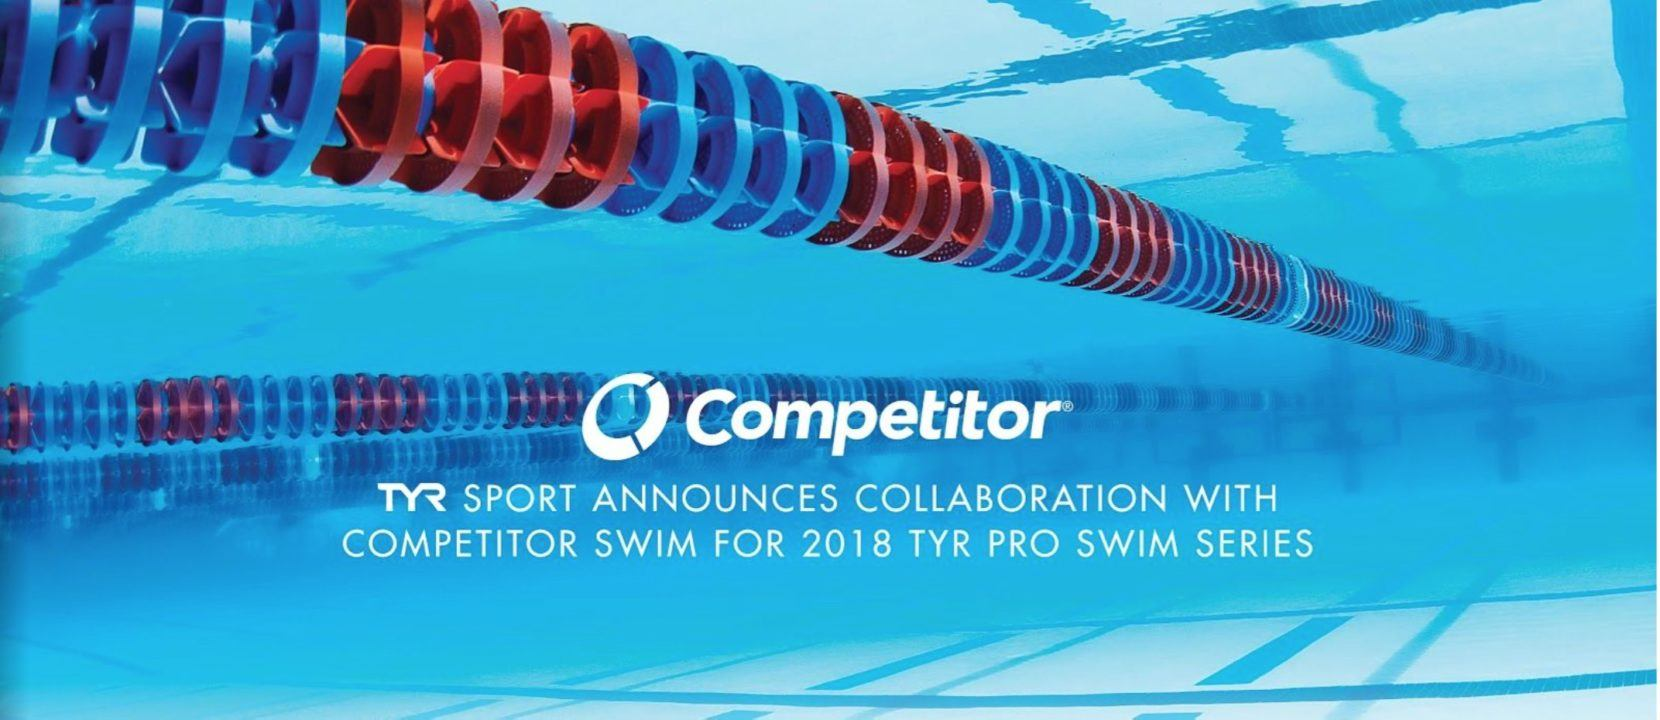 TYR Announces Collaboration With Competitor Swim For Pro Swim Series